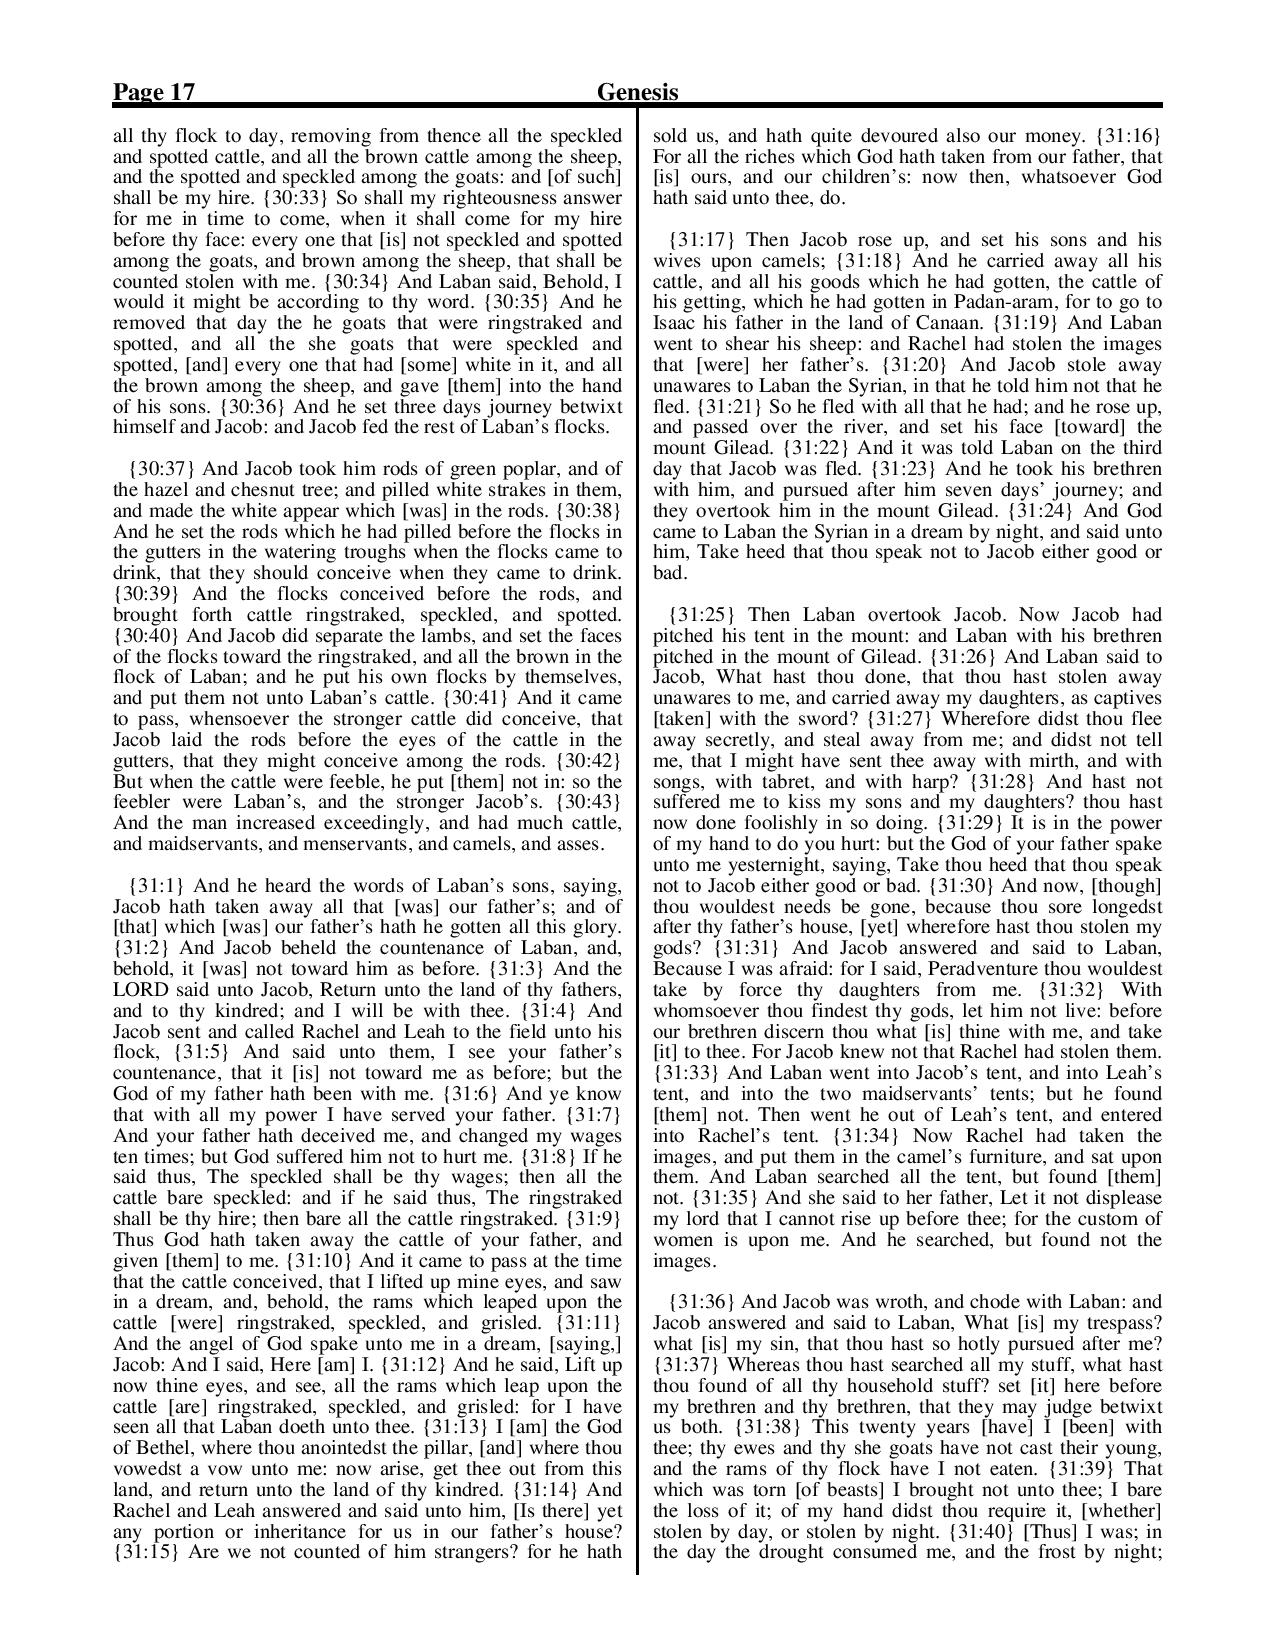 King-James-Bible-KJV-Bible-PDF-page-038